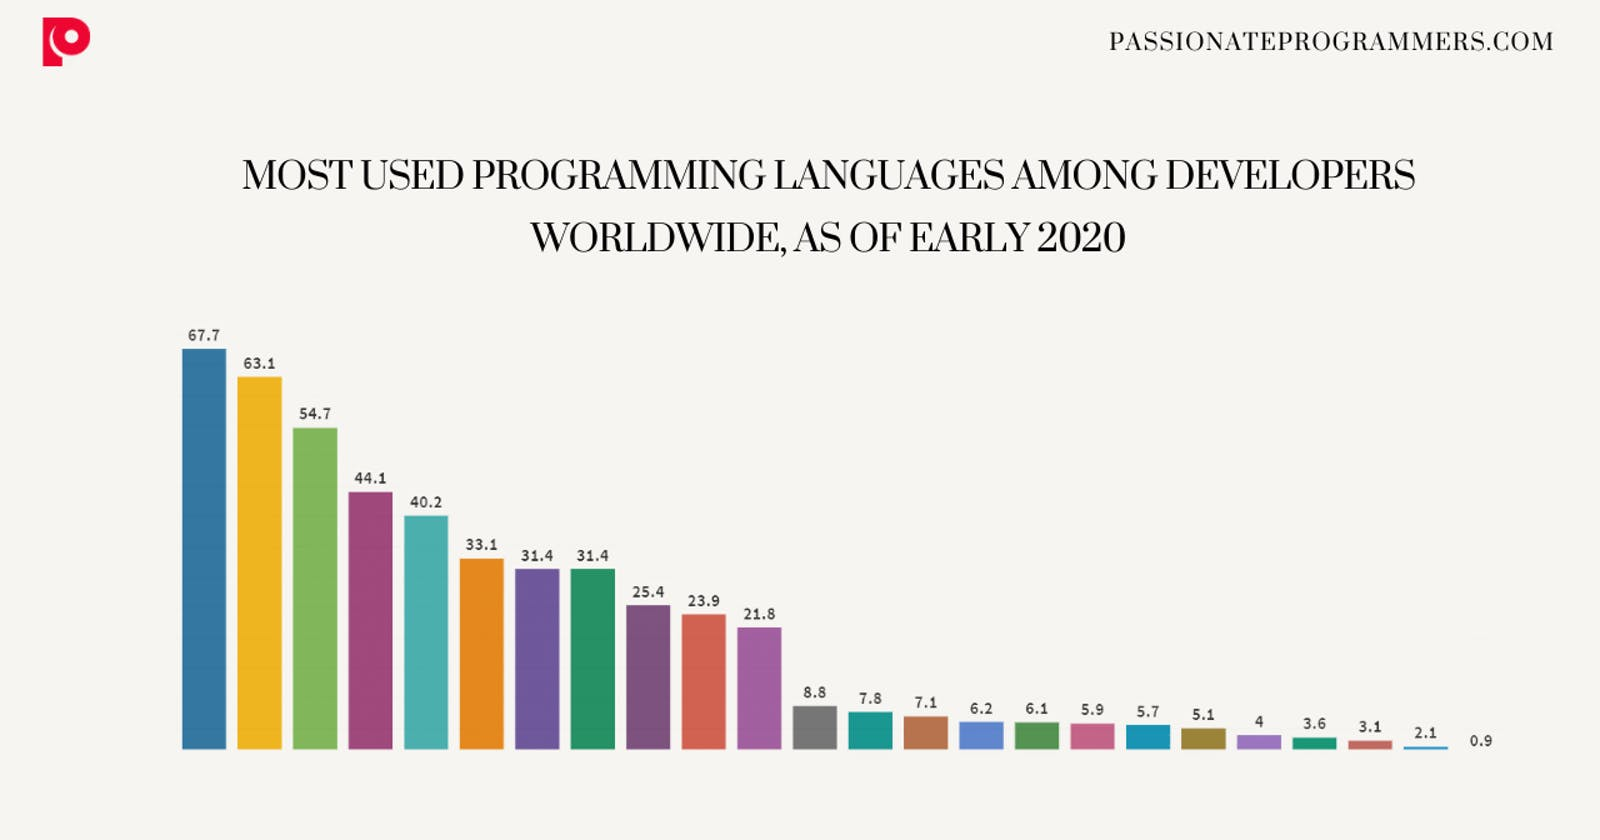 Most used programming languages among developers worldwide